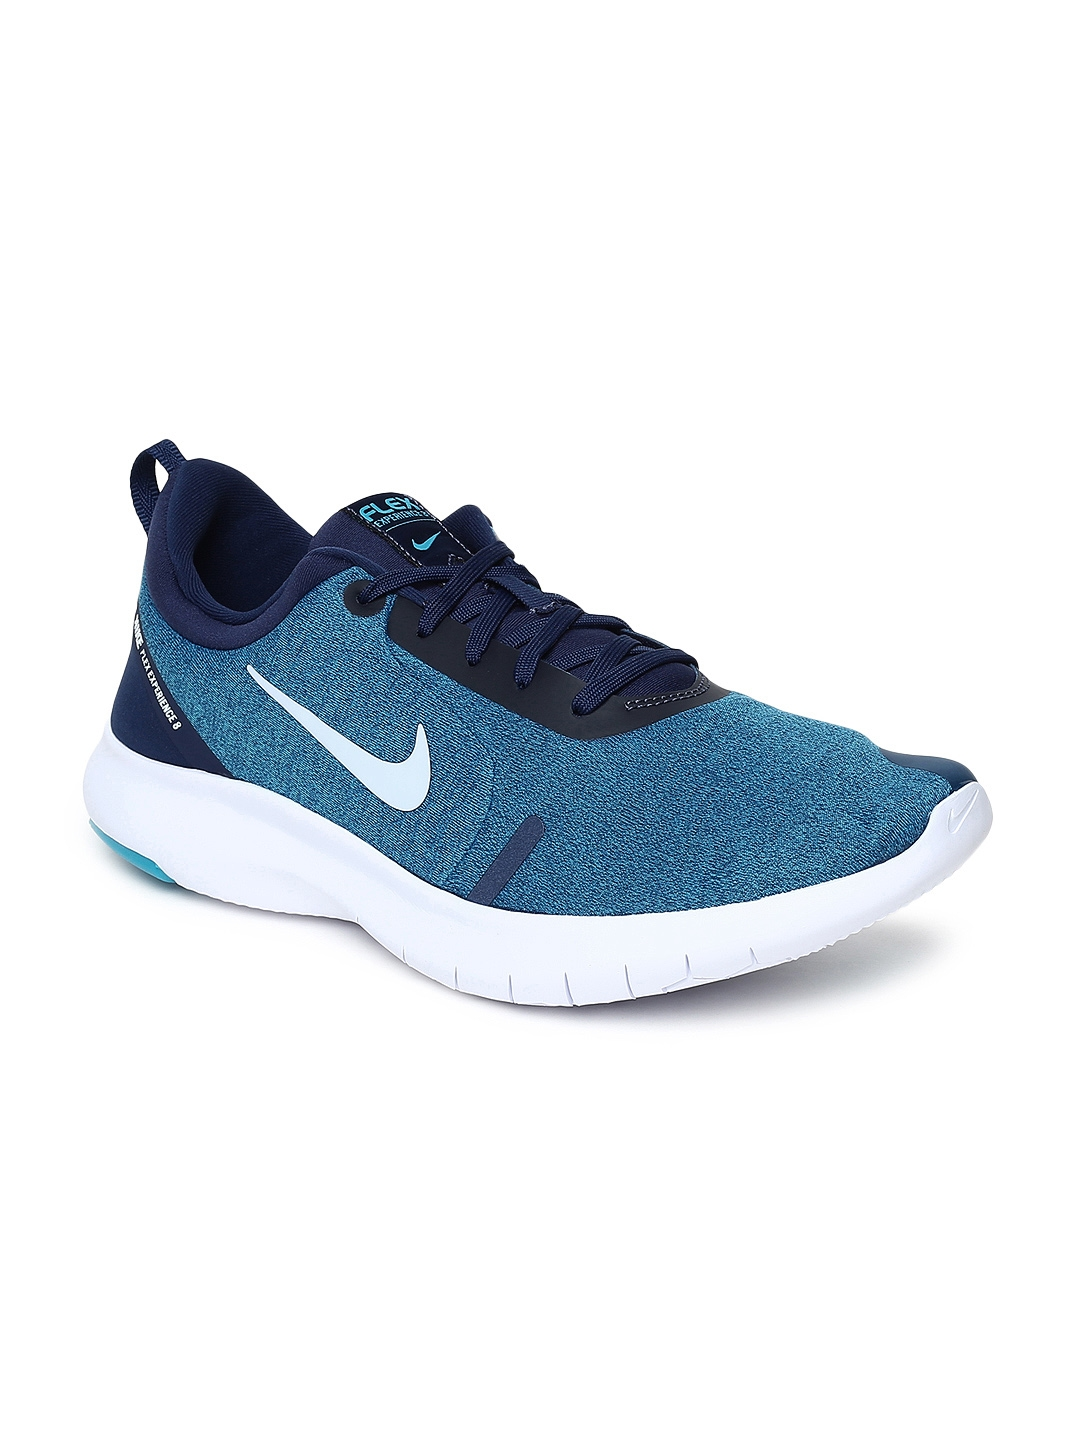 82e7a9e5b12eb Buy Nike Men FLEX EXPERIENCE RN 8 Blue Running Shoes - Sports Shoes ...